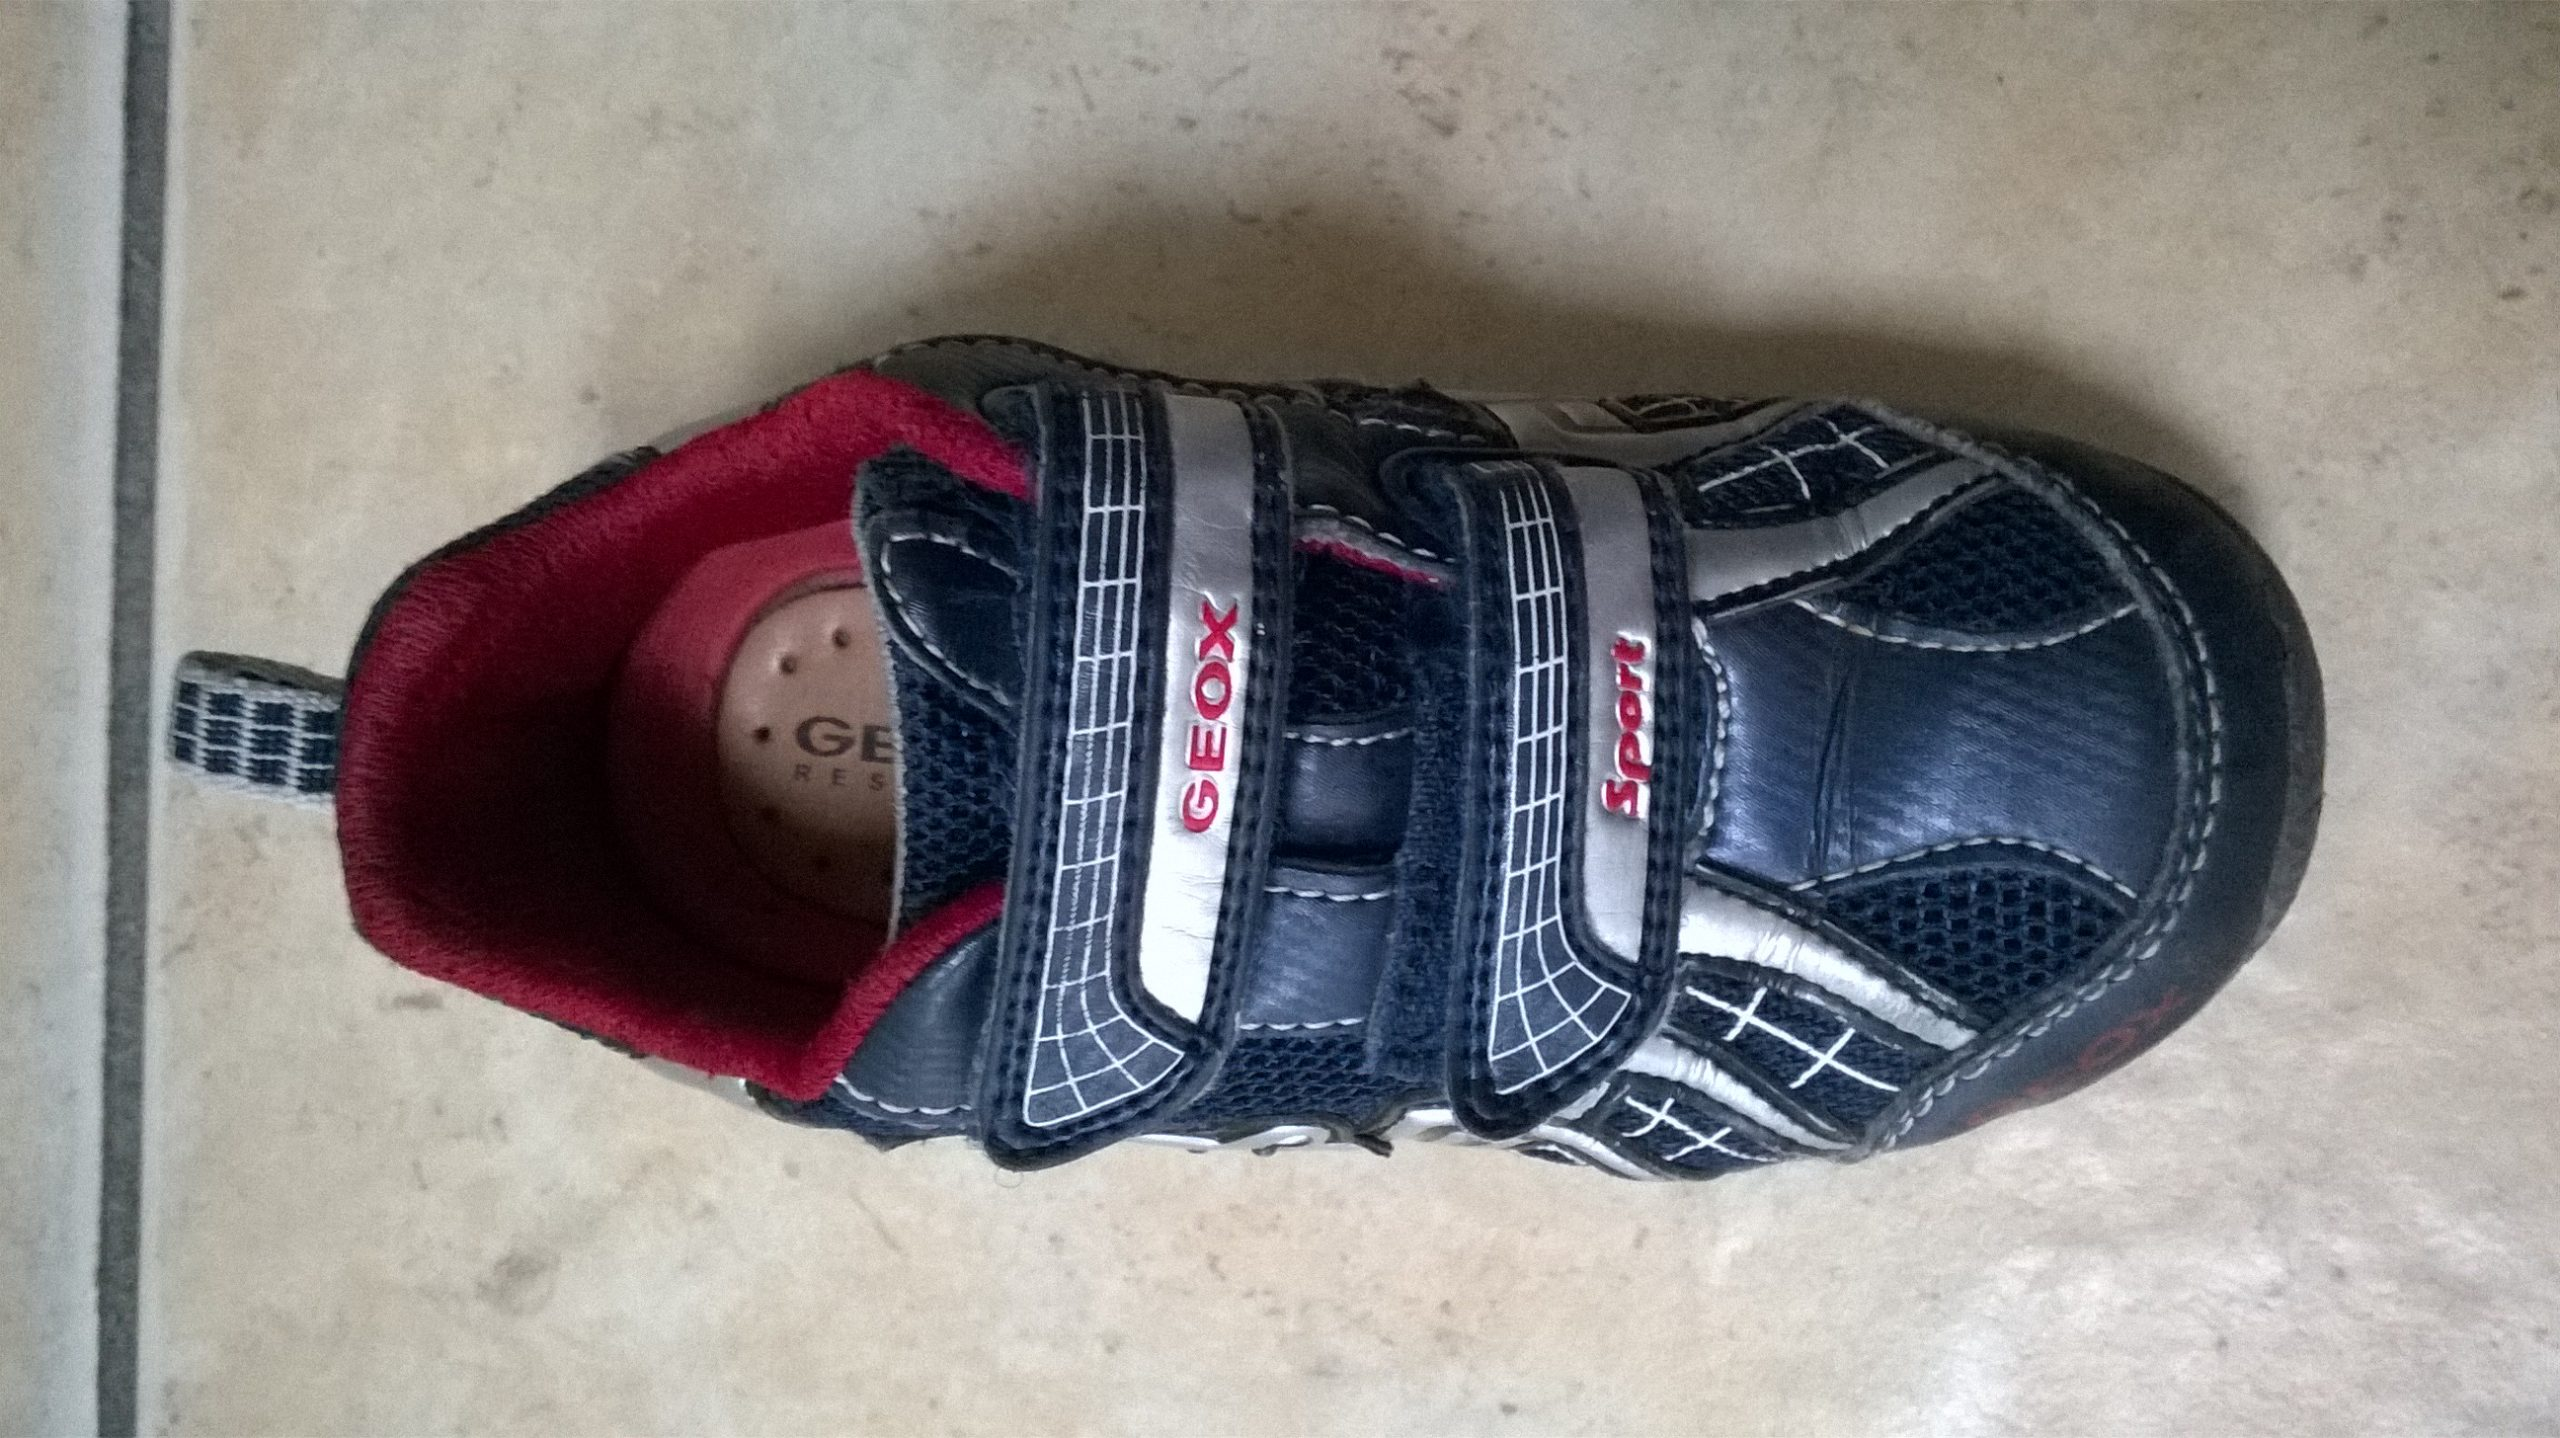 Found: Geox child's shoe